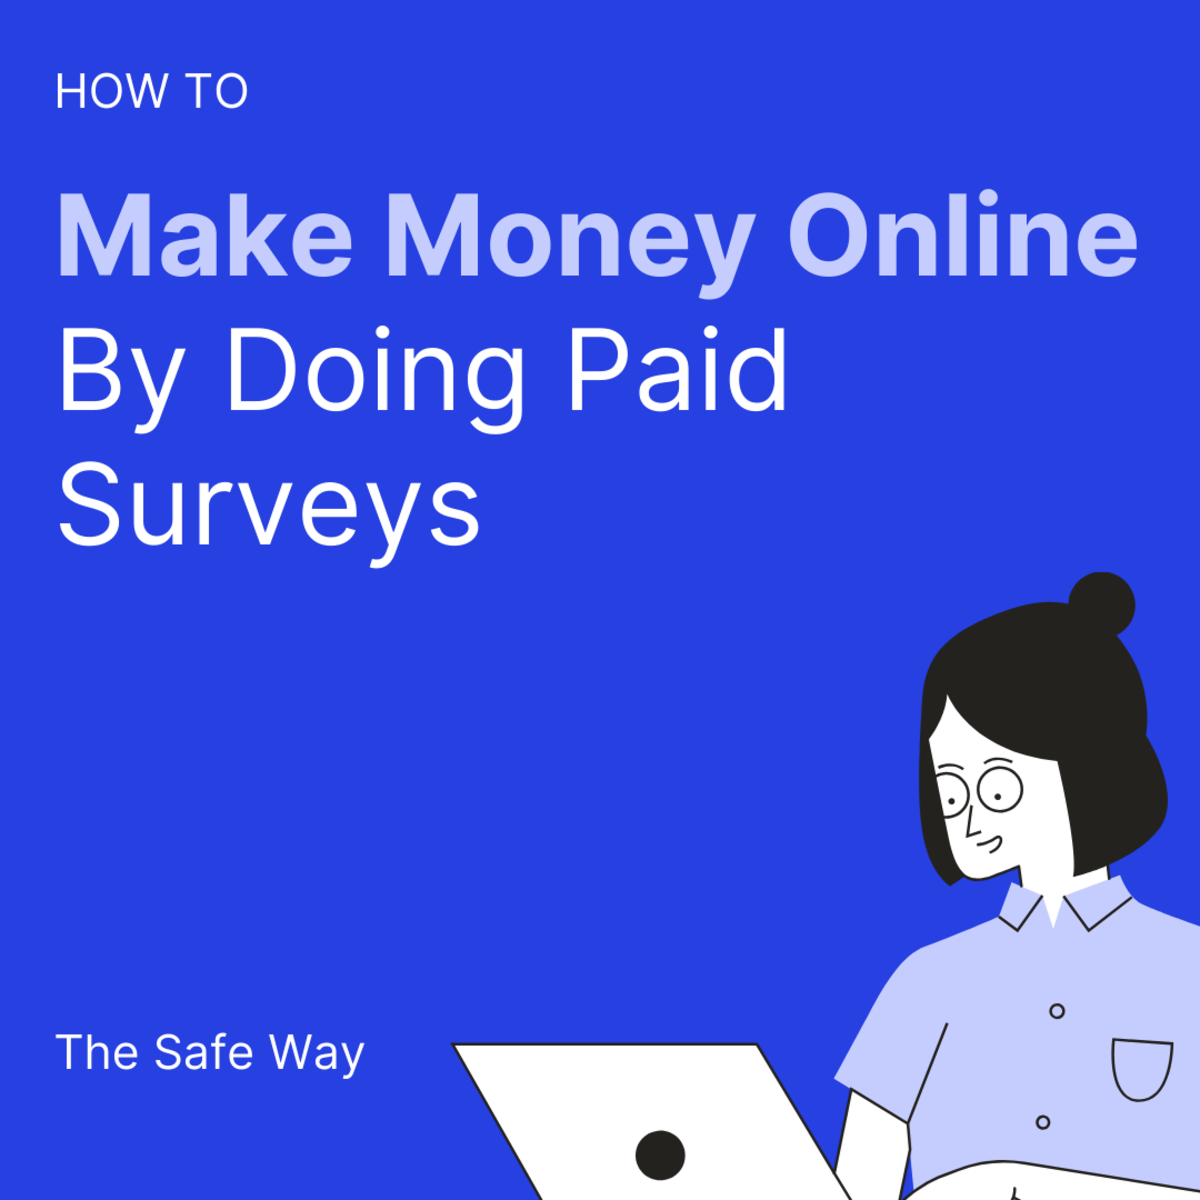 How to Safely Make Money Online Doing Paid Surveys